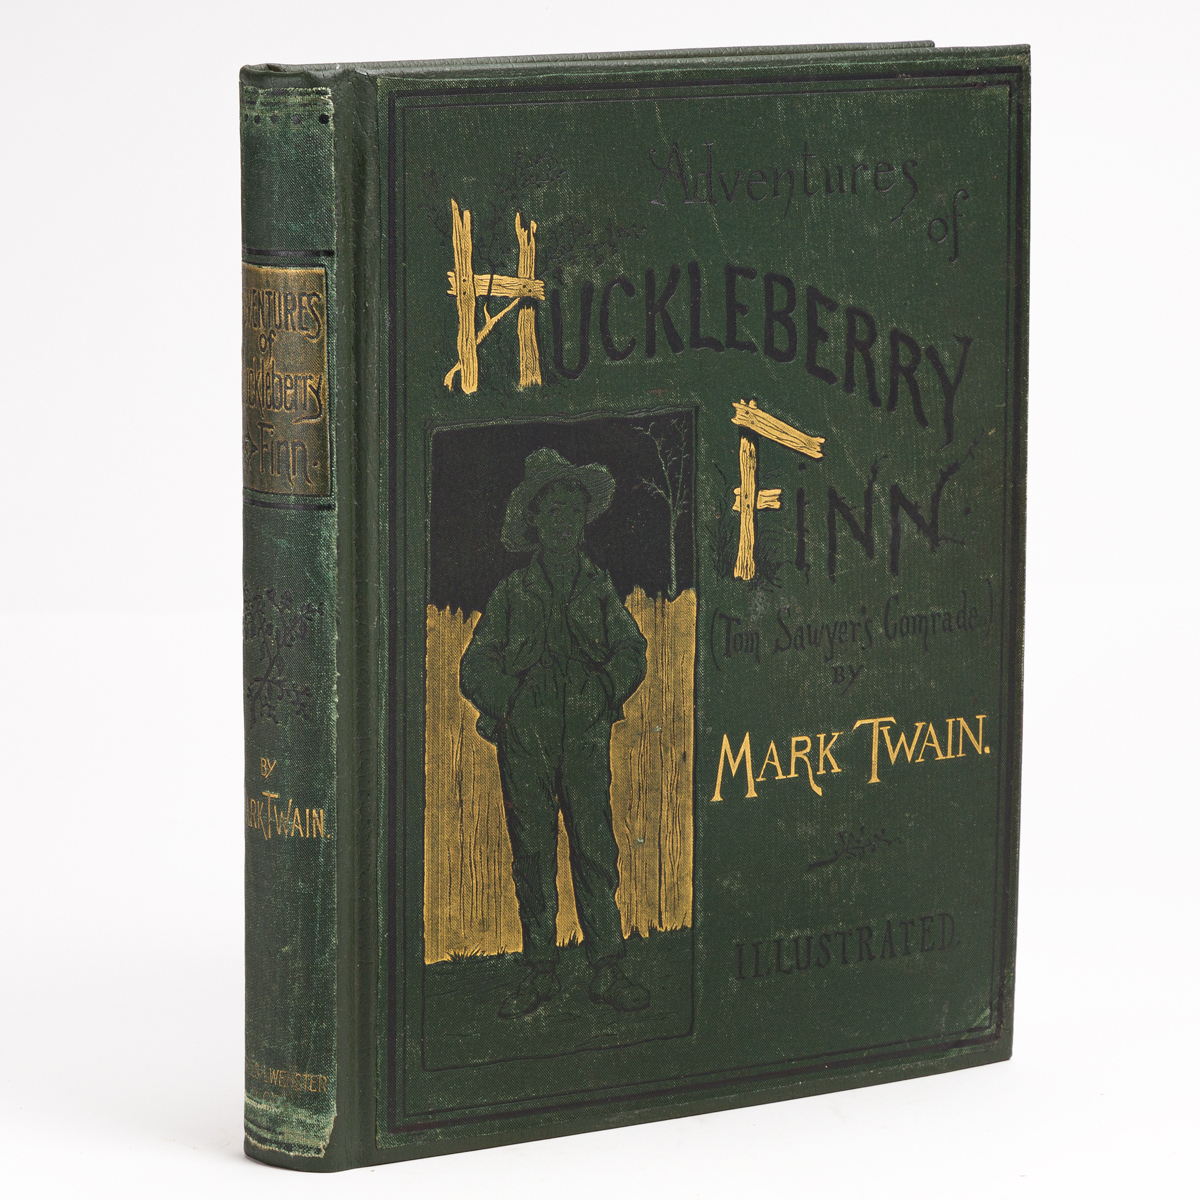 TWAIN, MARK. Adventures of Huckleberry Finn.